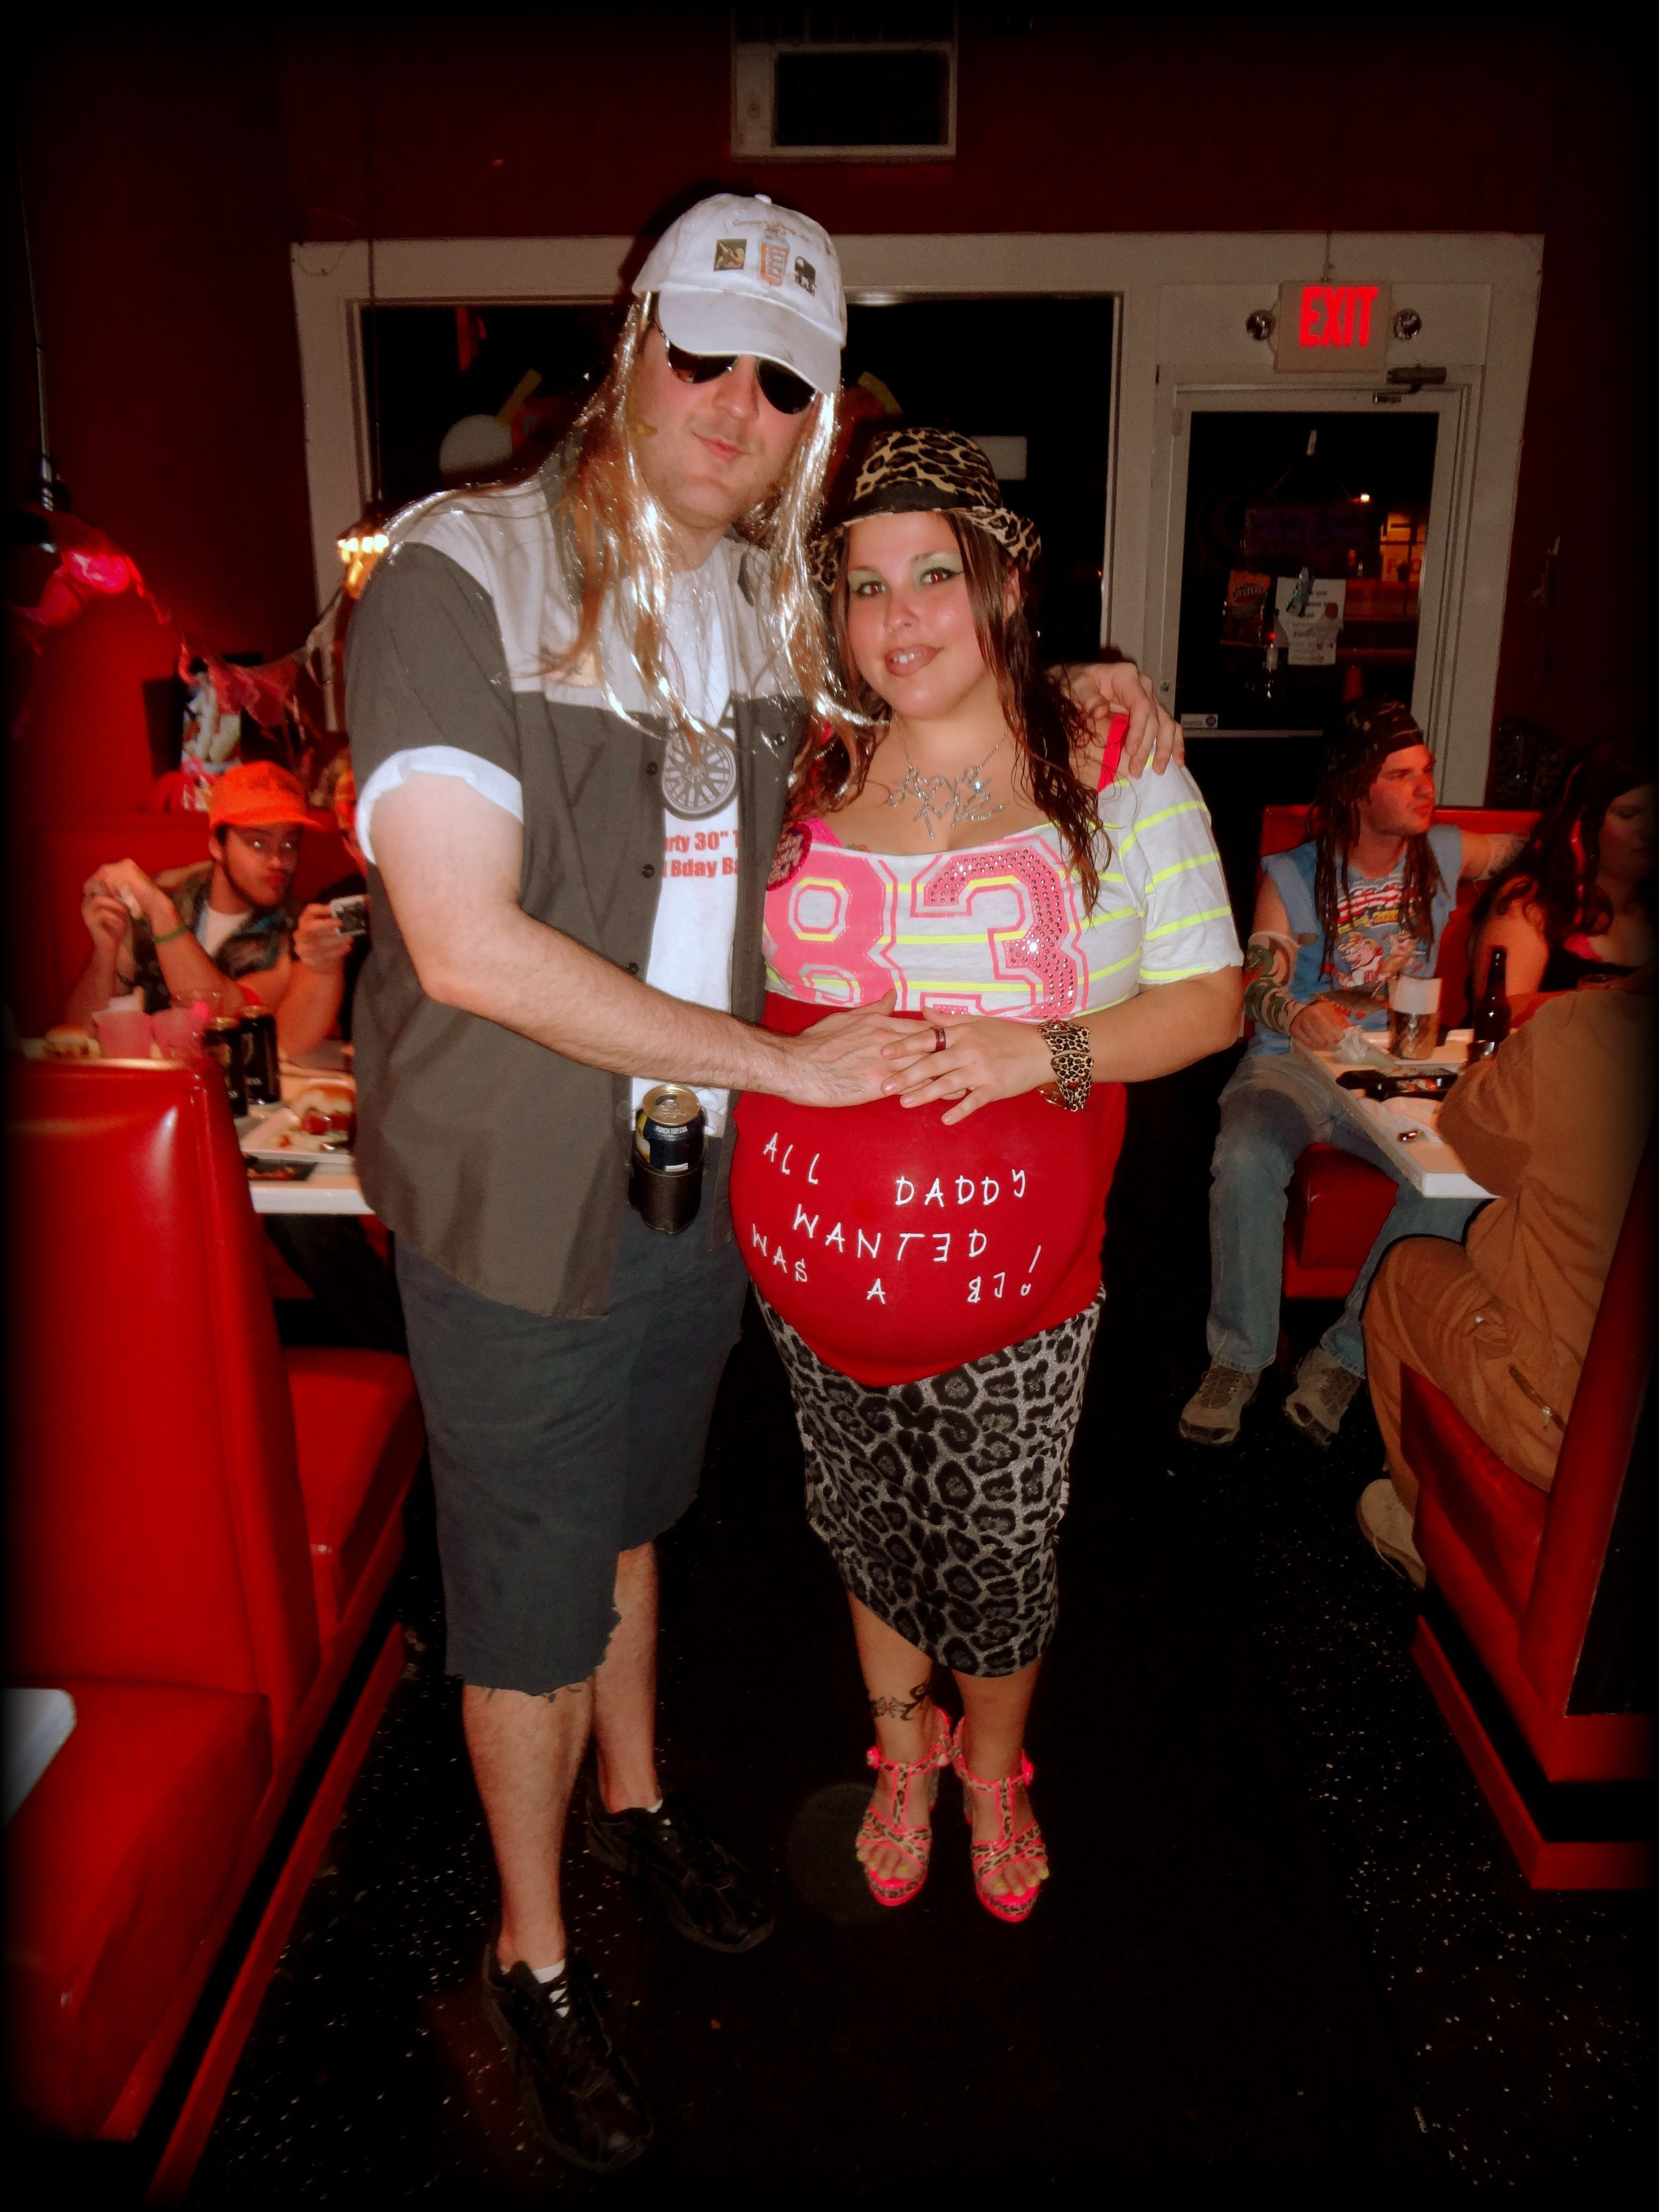 10 Lovable White Trash Christmas Party Ideas corrines durty 30 trailer trash bash white trash redneck 2 2021